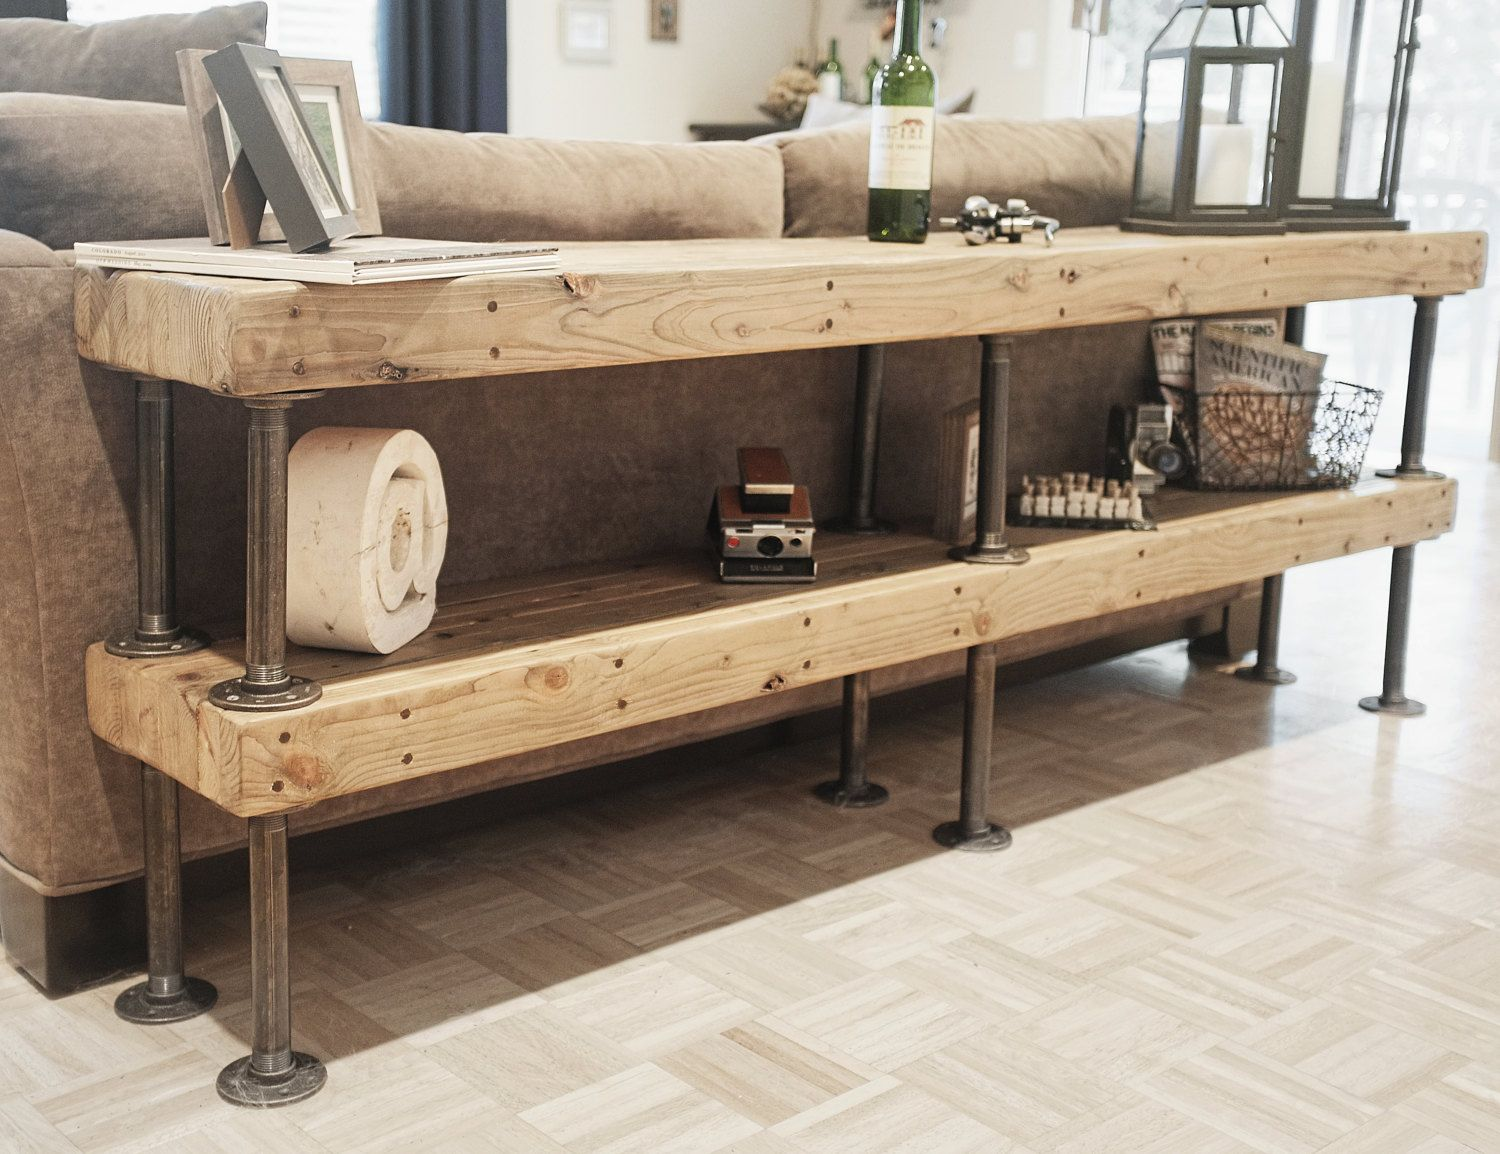 Galvanized pipe and wood | Barnwood Crafts | Pinterest | Galvanized pipe,  Pipes and Woods